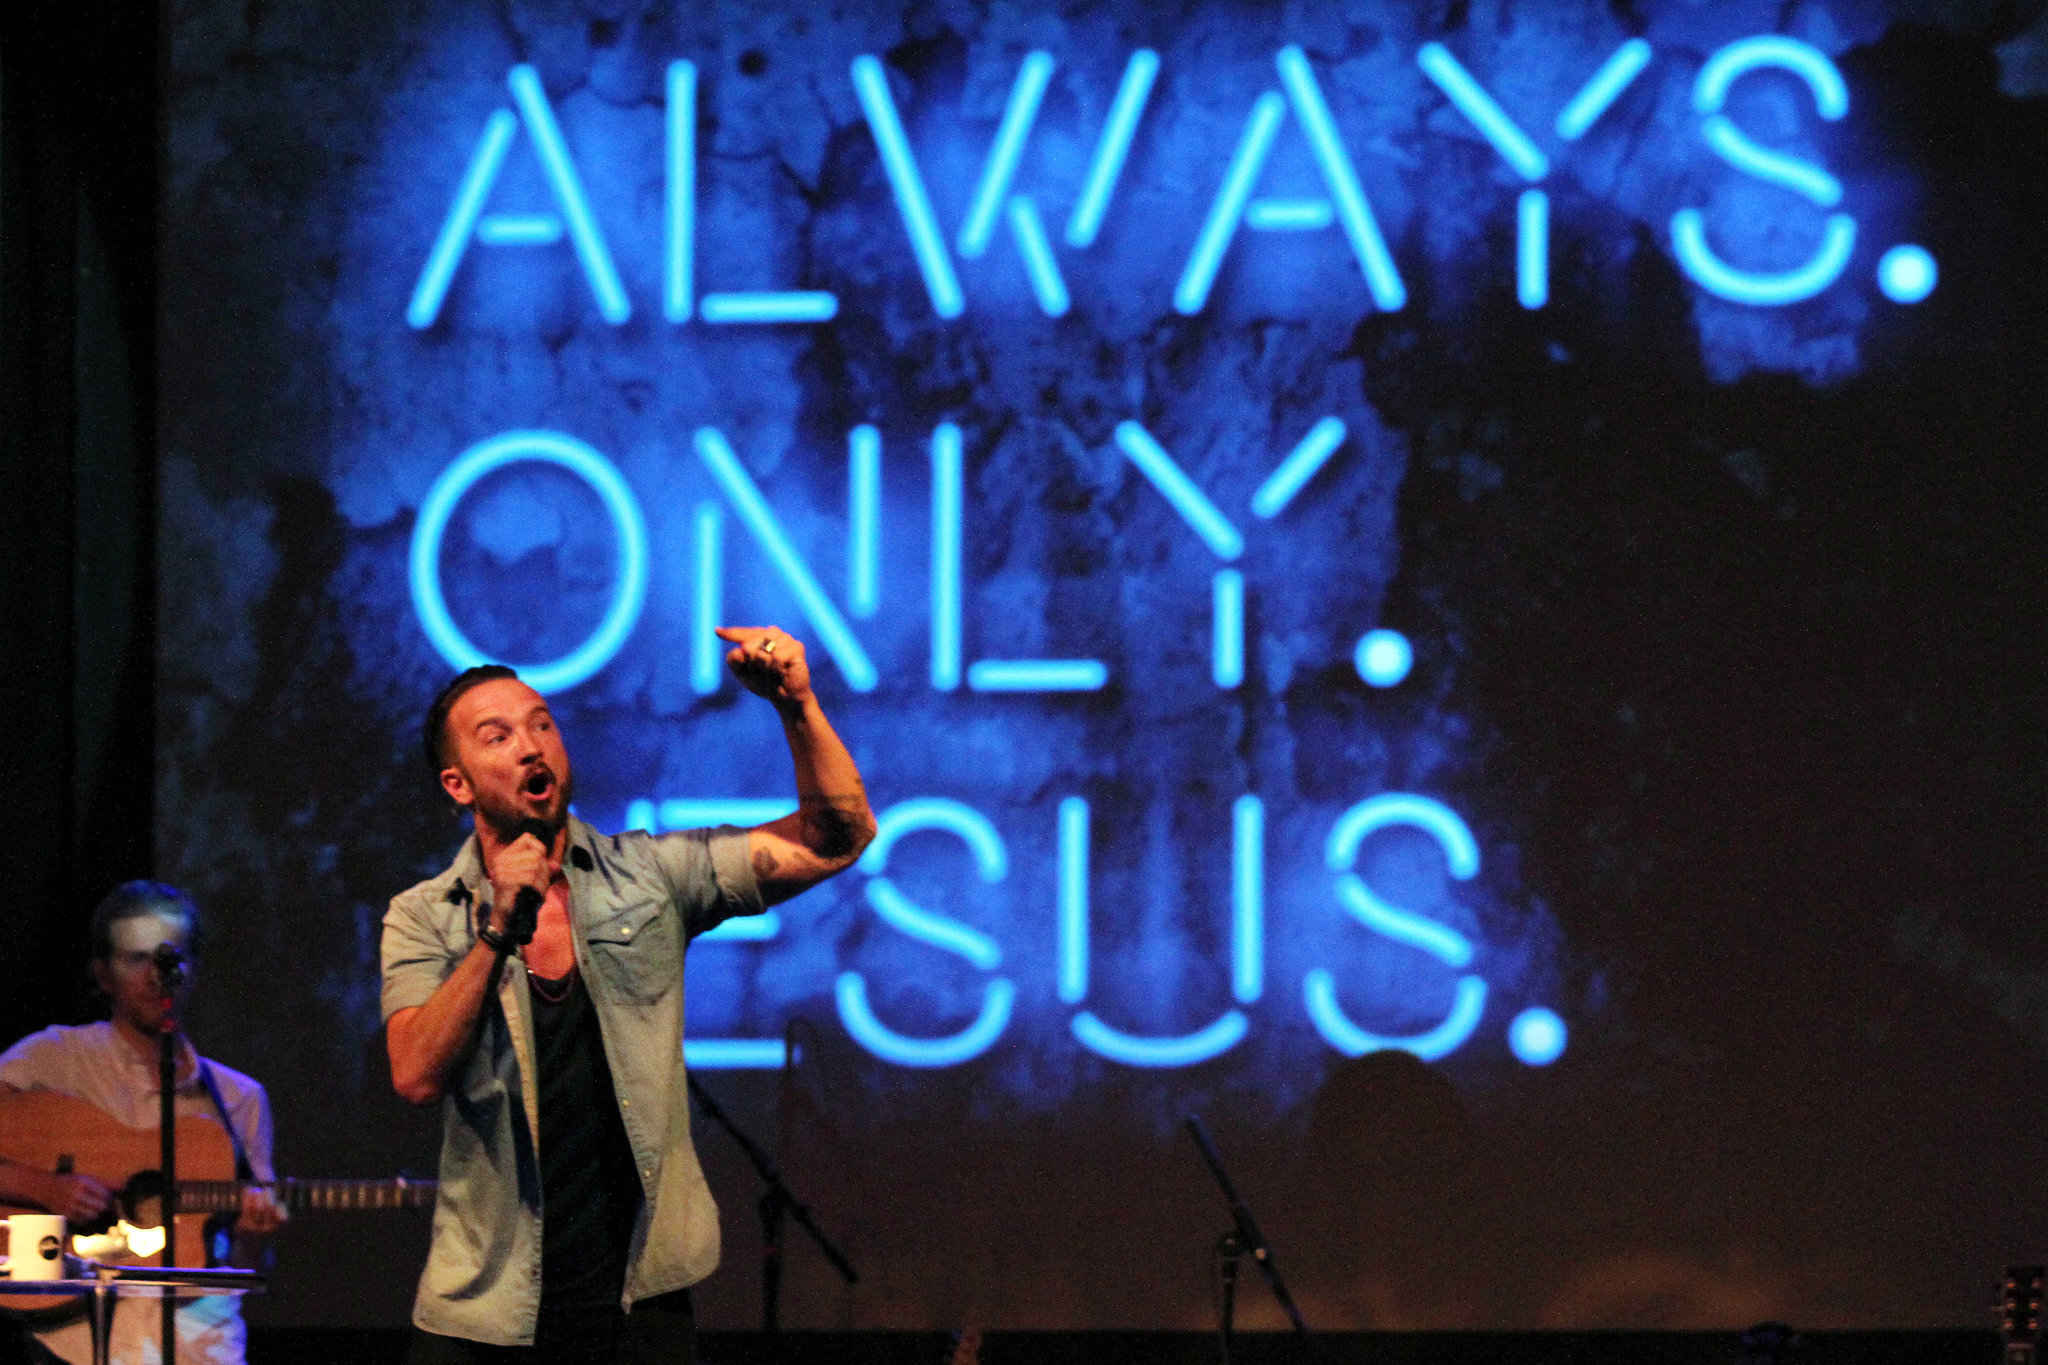 hillsong church NYC